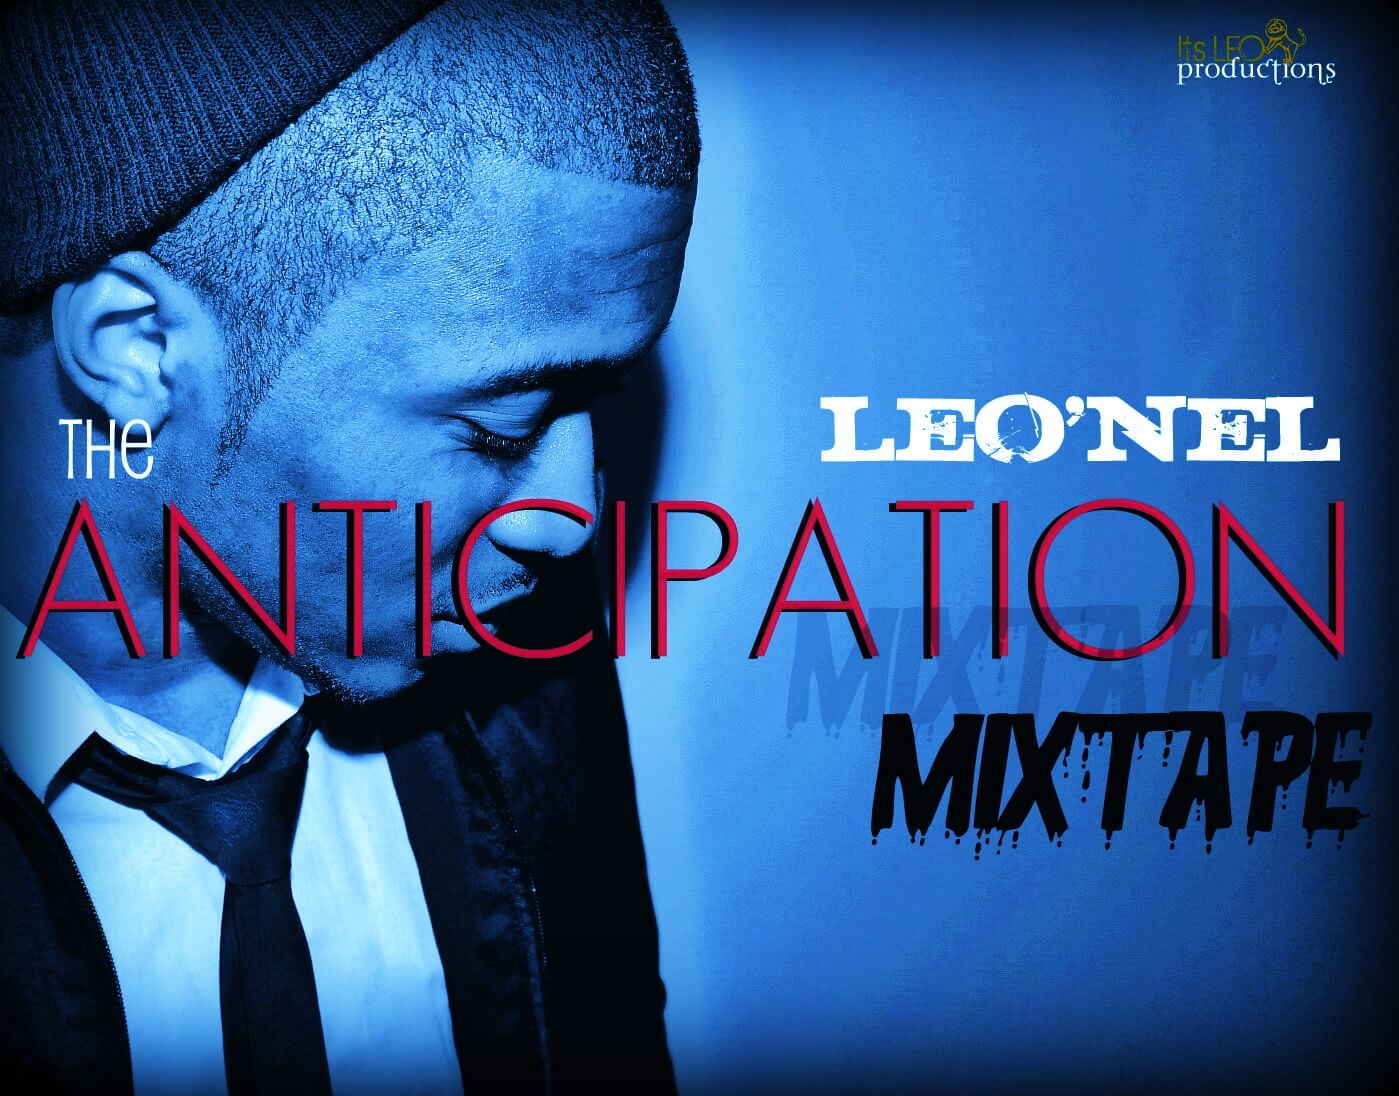 THE ANTICIPATION MIXTAPE COVER ART blue